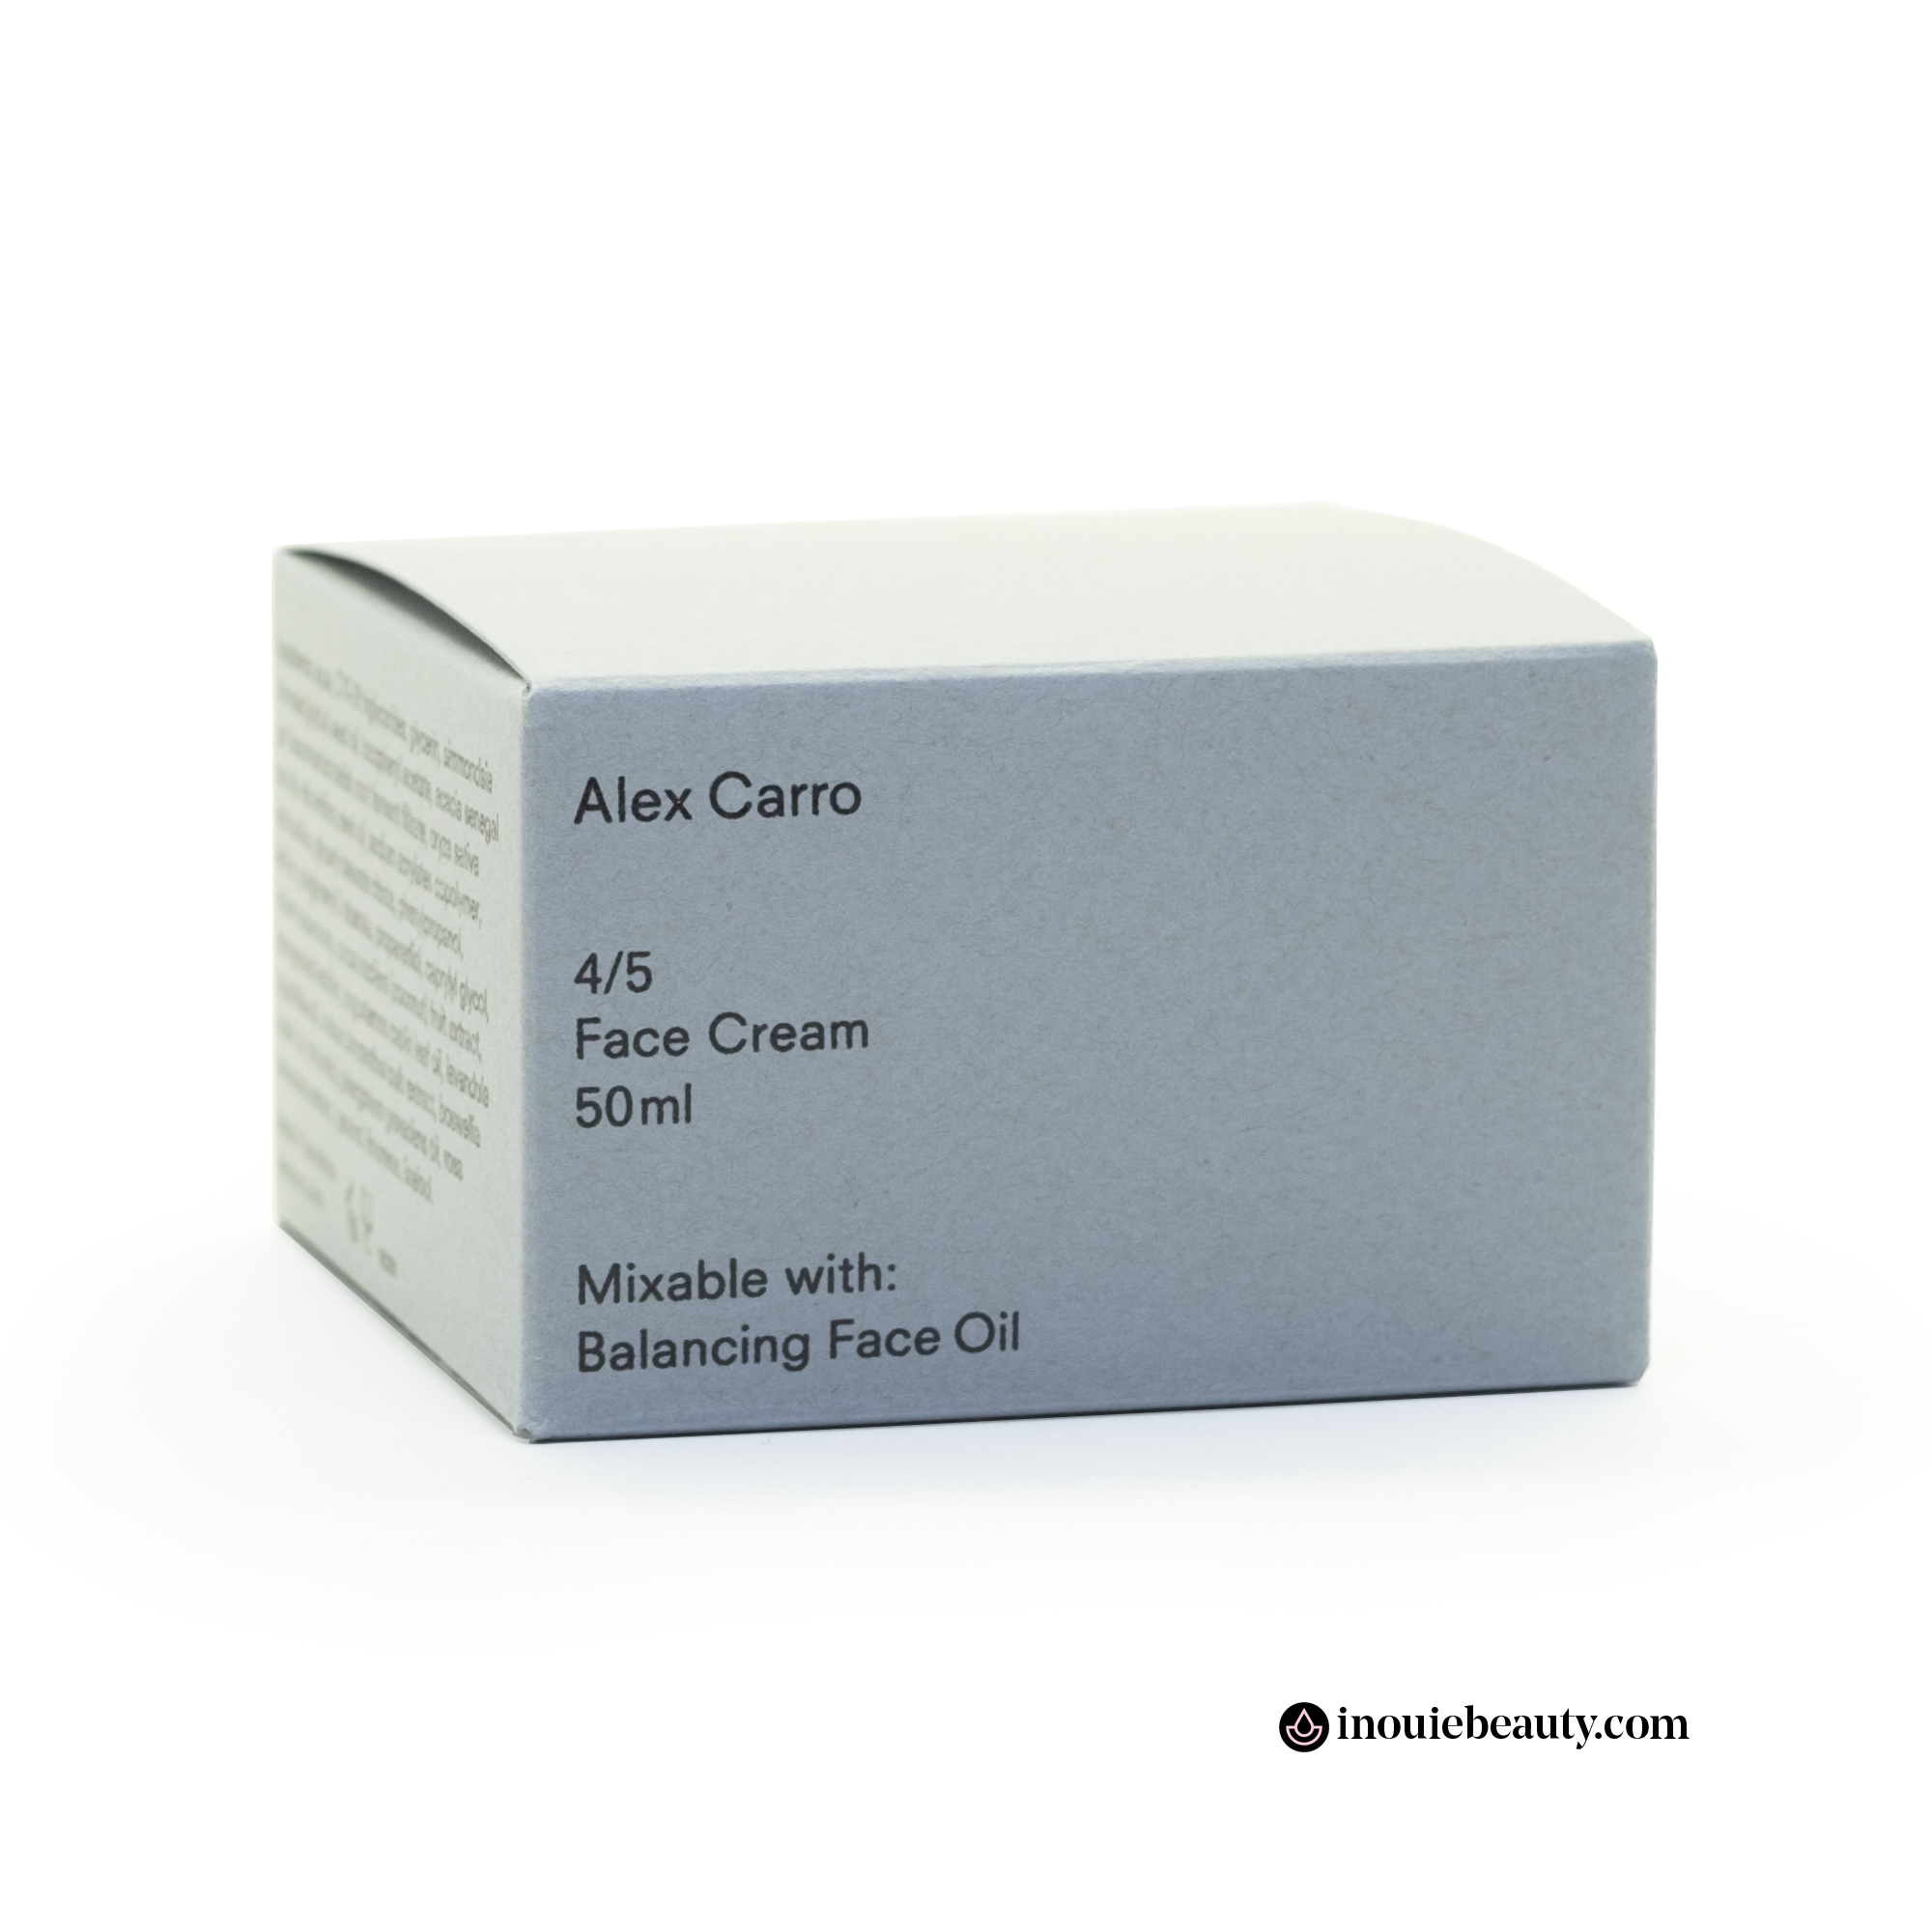 Alex Carro Face Cream